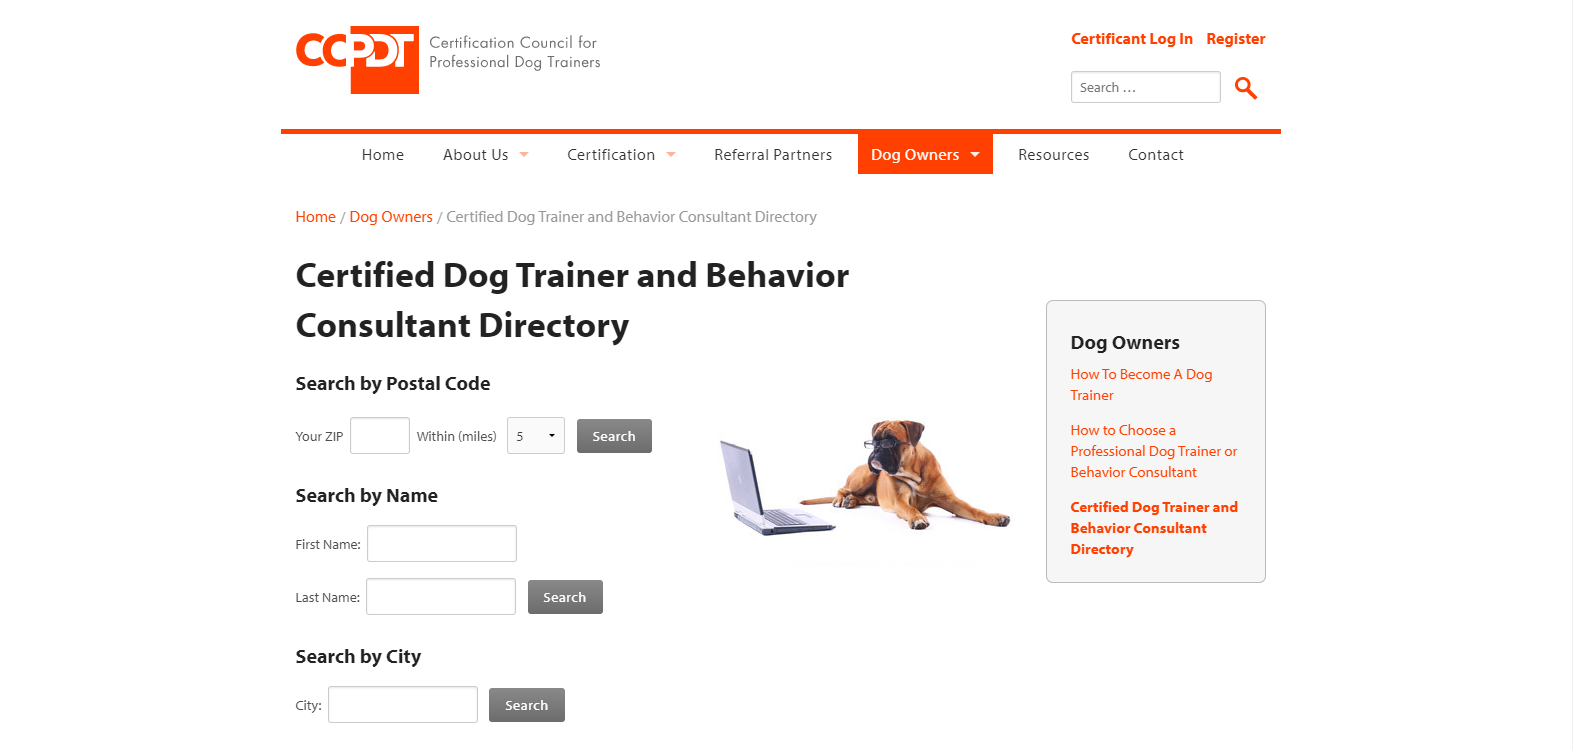 Screenshot of Certification Counsel for Professional Dog Trainers Website